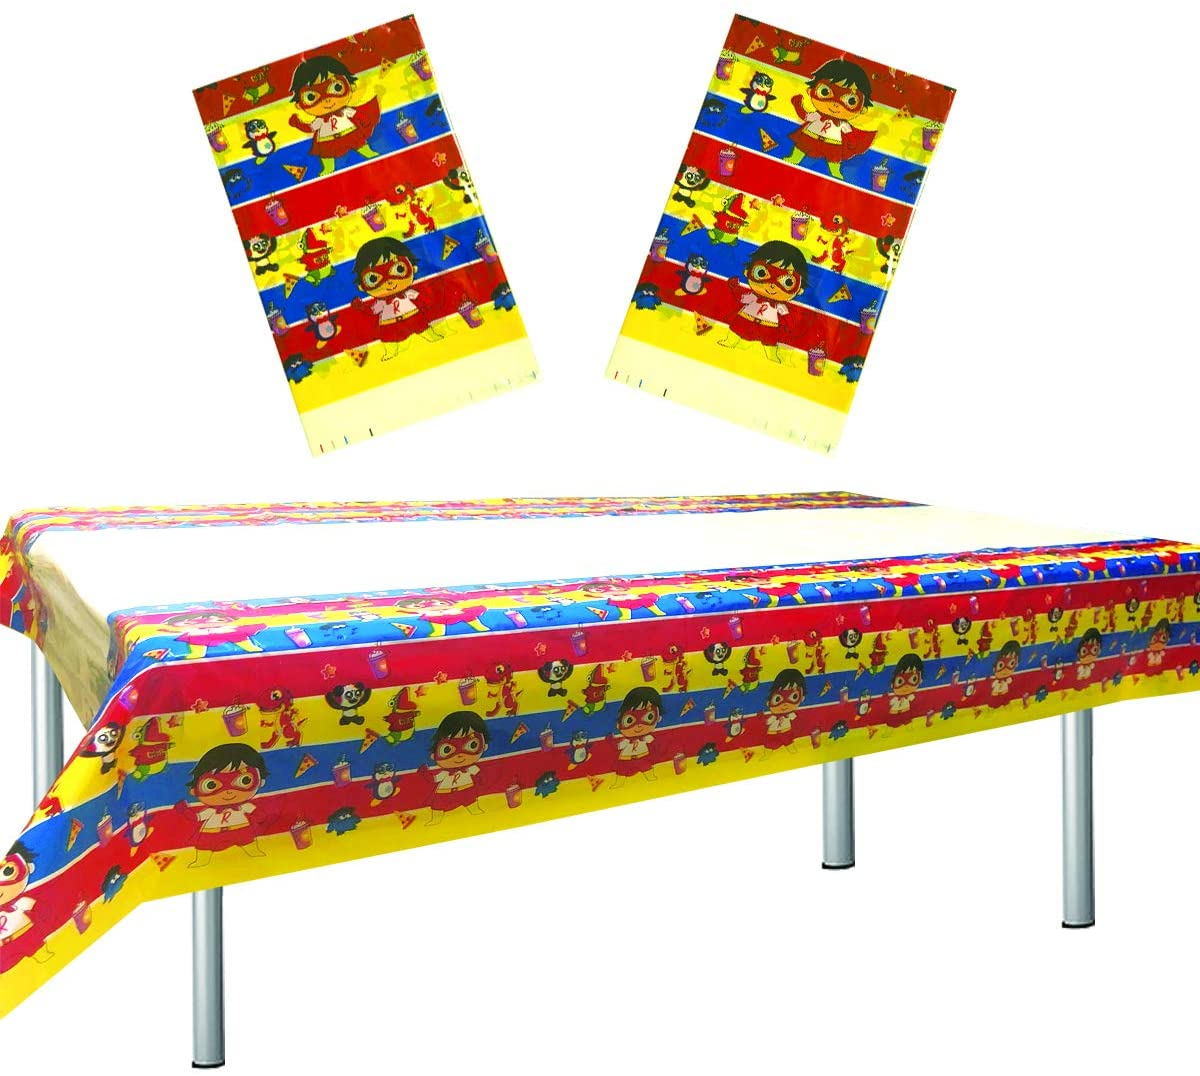 2 Pcs Ryan's World Tablecloth, Ryan's World Table Cover Birthday Party Supplies Decorations (70